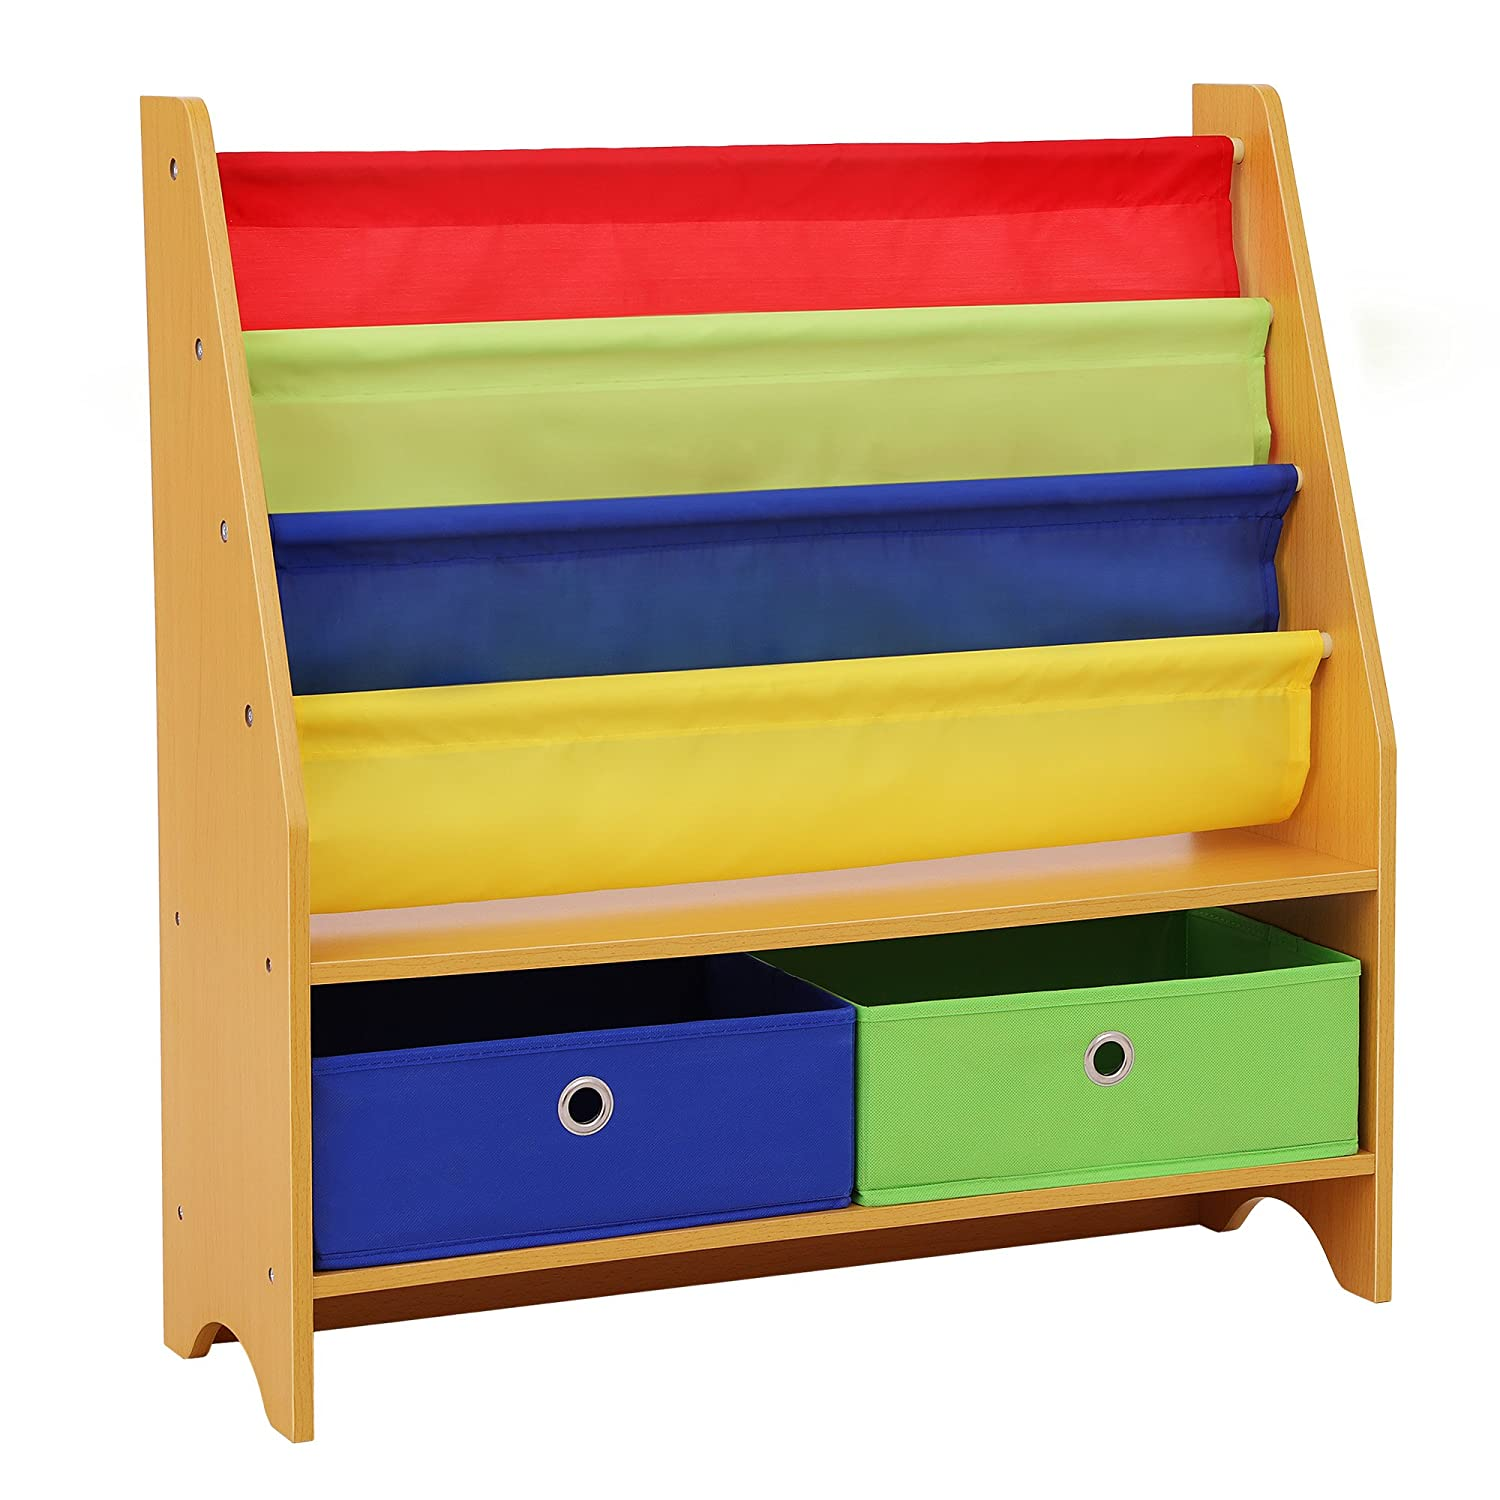 SONGMICS Childrenu0027s Bookcase Rack Sling Book Shelf Toy Storage Organizer  With 2 Fabric Bins And 3